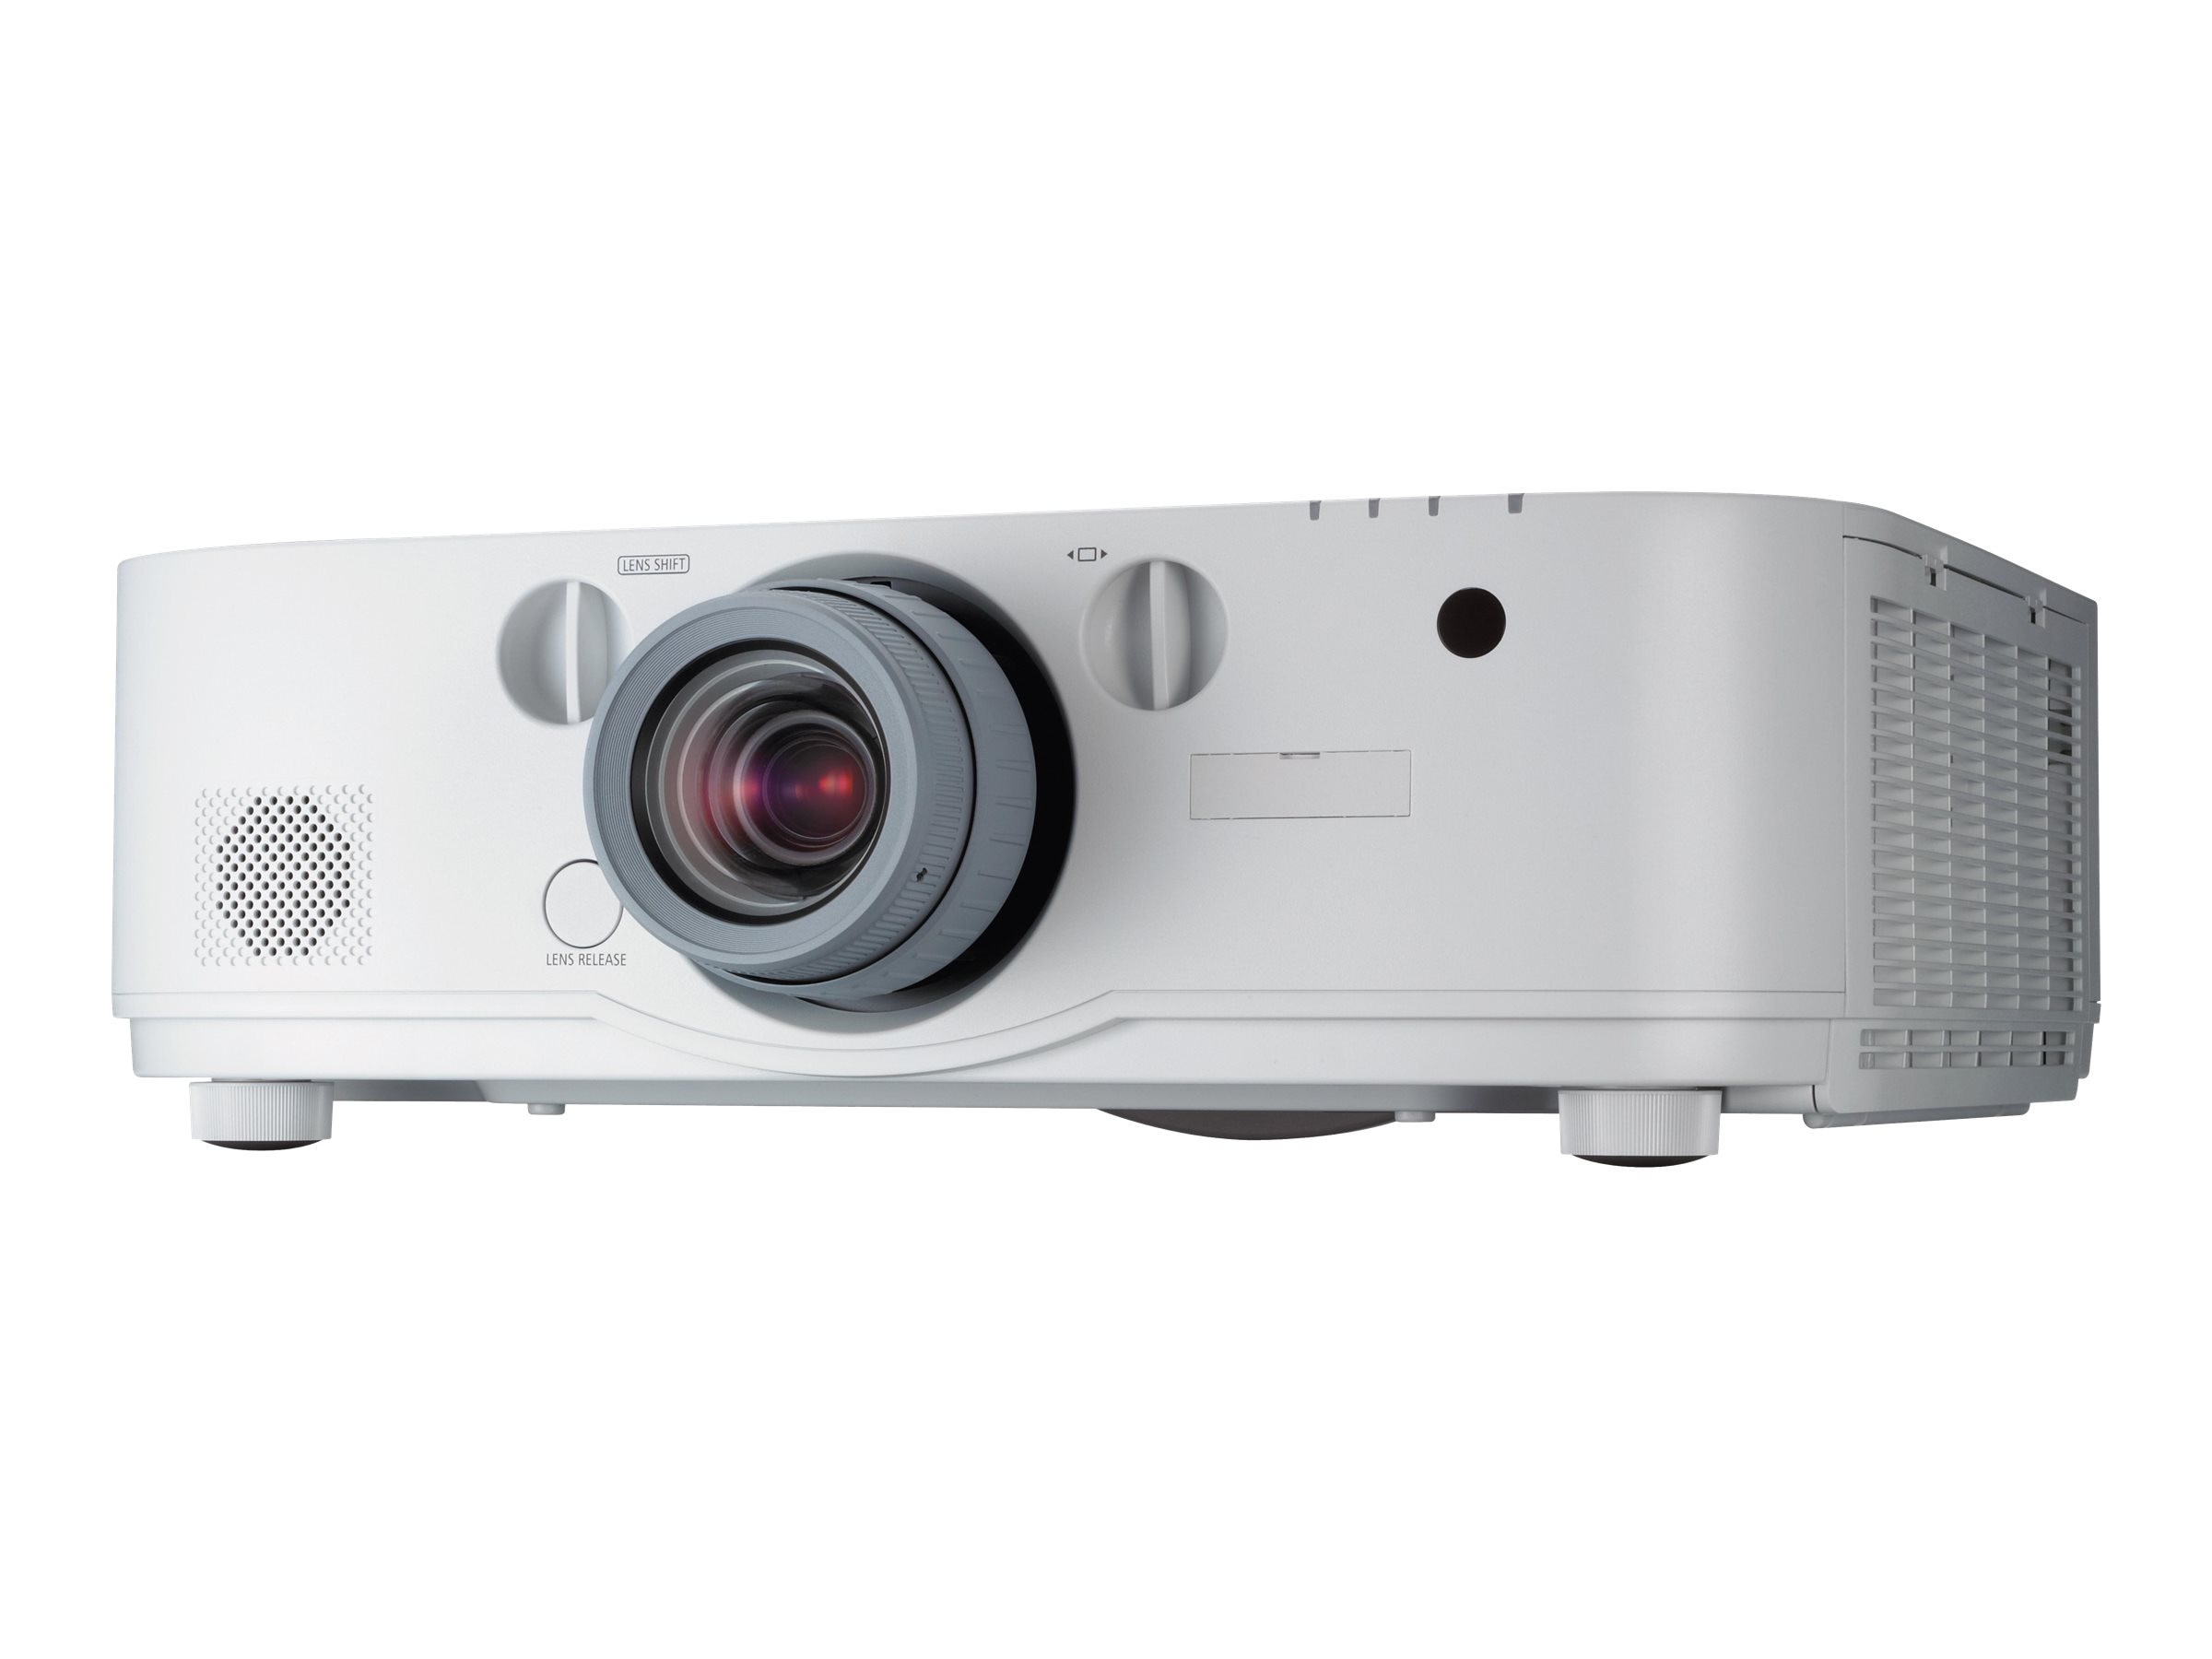 NEC PA672W WXGA LCD Projector, 6700 Lumens, White with 1.5-3.0:1 Zoom Lens